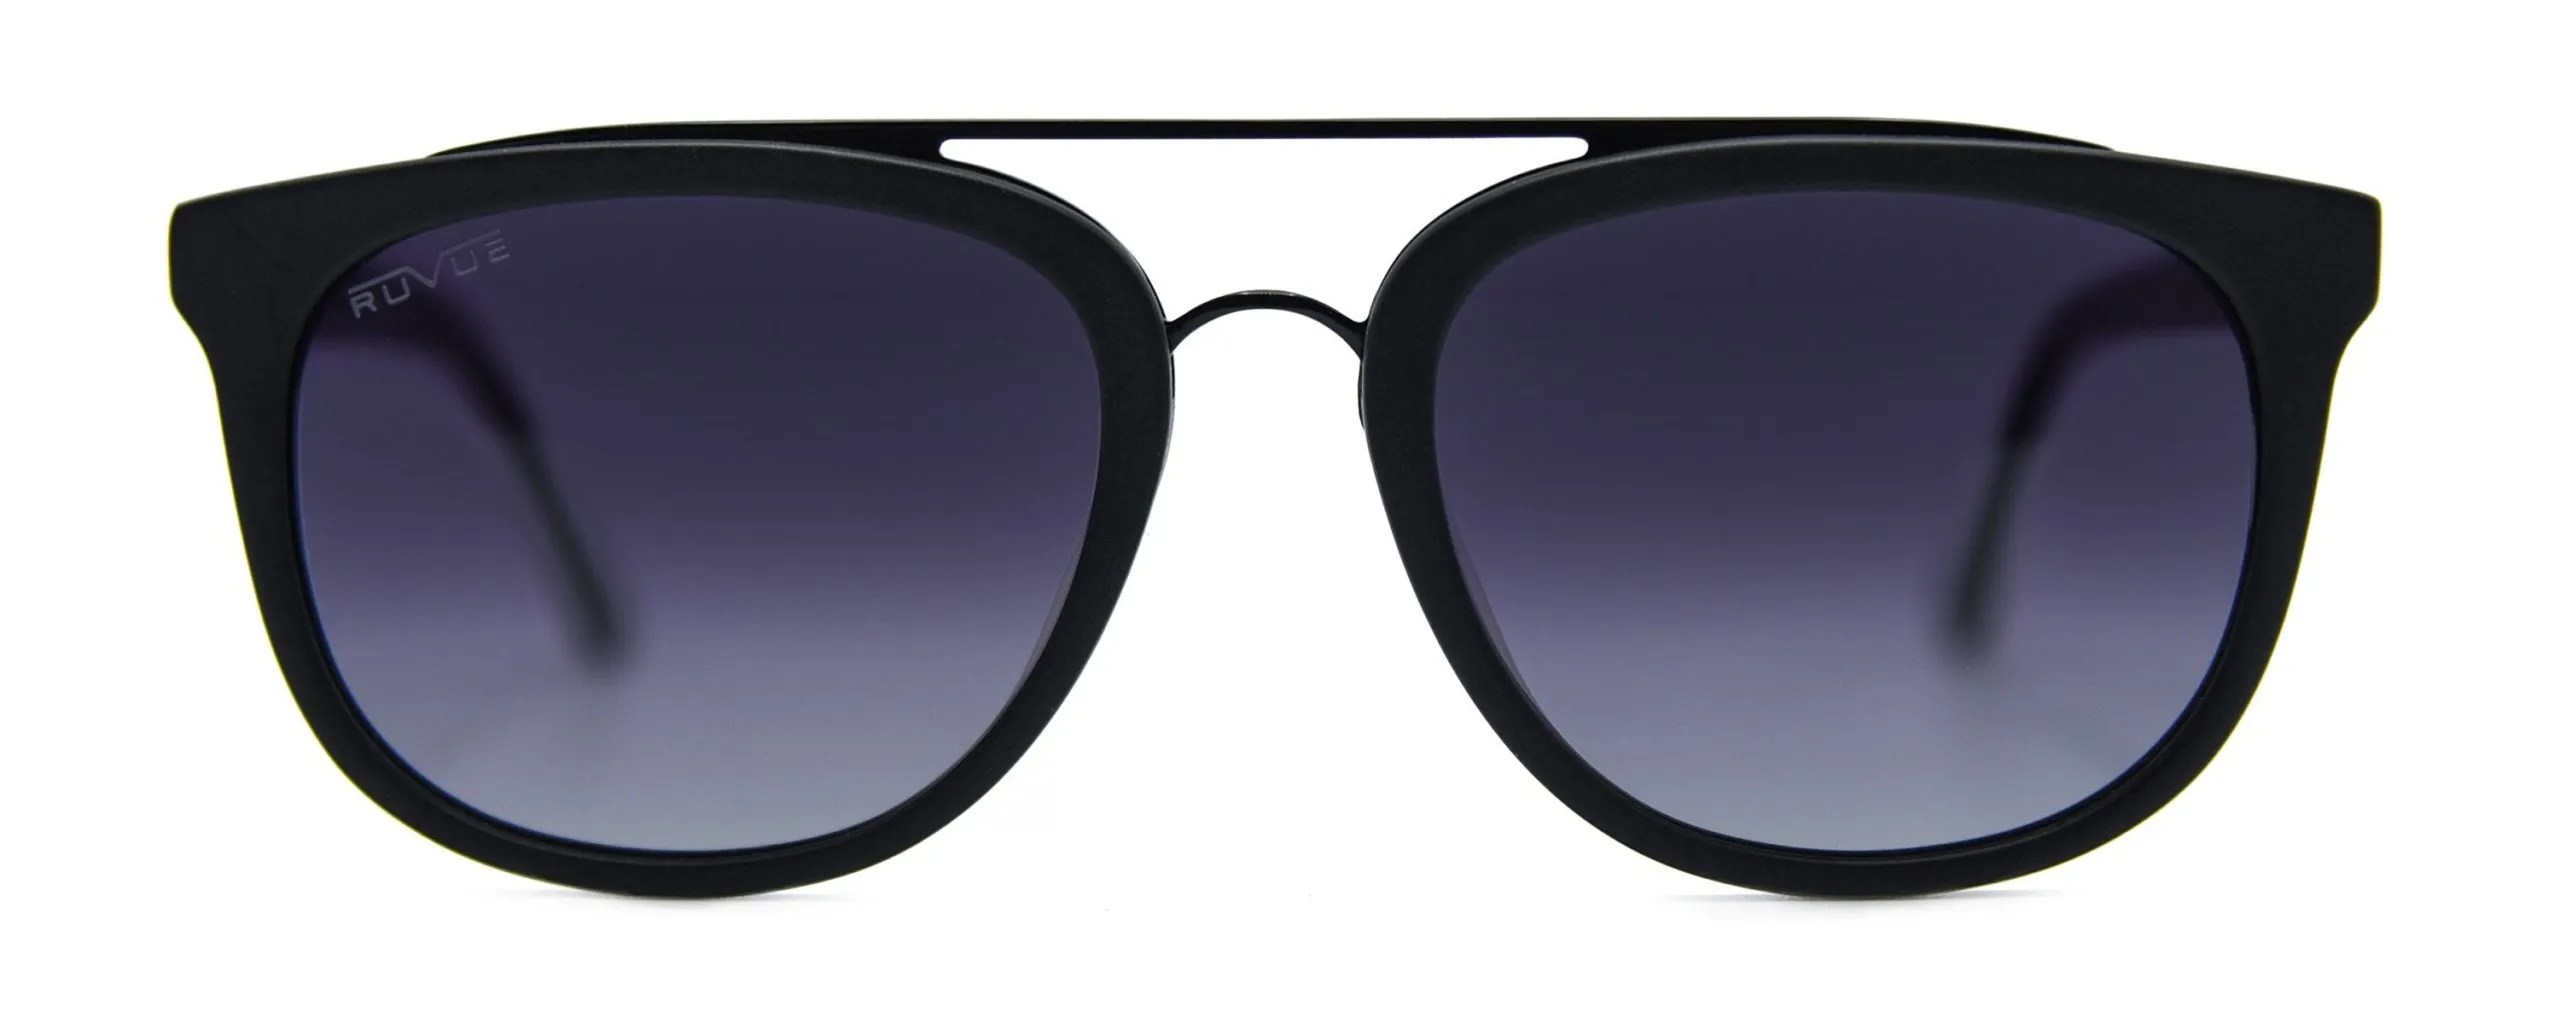 Zena - Matte Black - Black Gradient Polarized Grey Lenses - Front